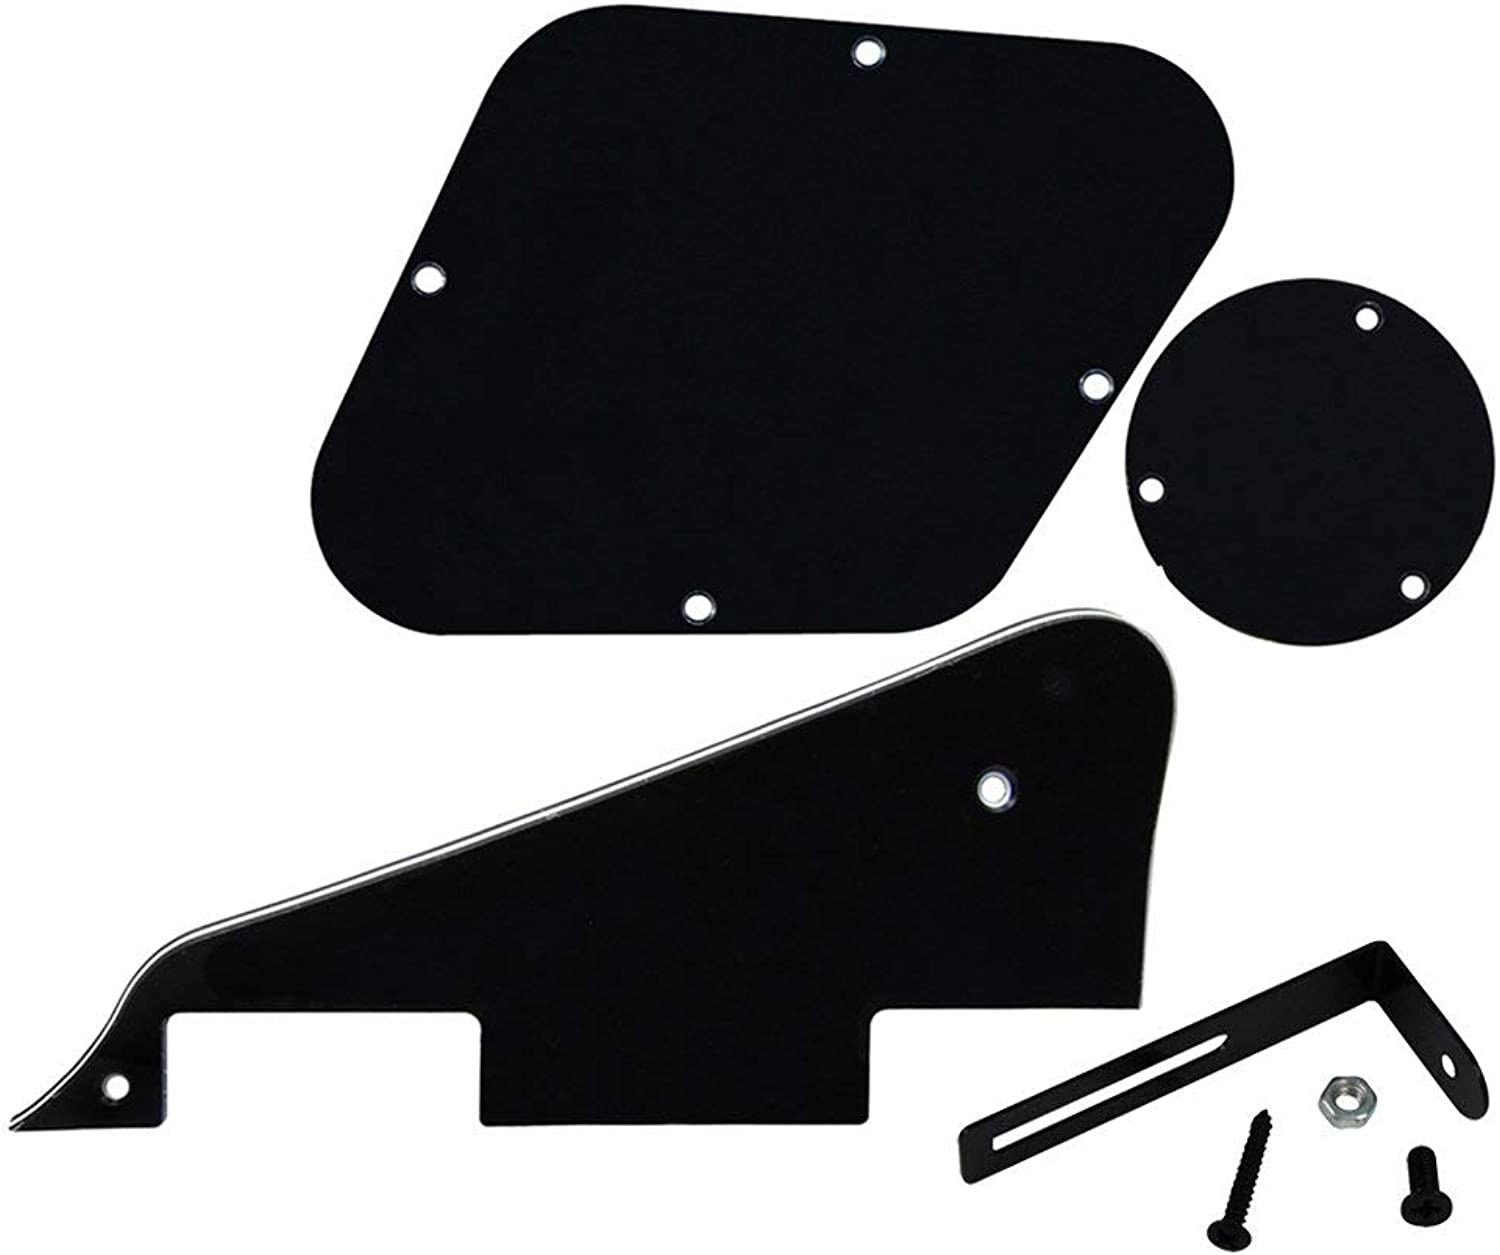 FLEOR 3Ply Black LP Style Electric Guitar Pickguard Scratch Plate & Control Cavity Cover & Switch Cavity Cover & Black Bracket for LP Style Guitar Replacement